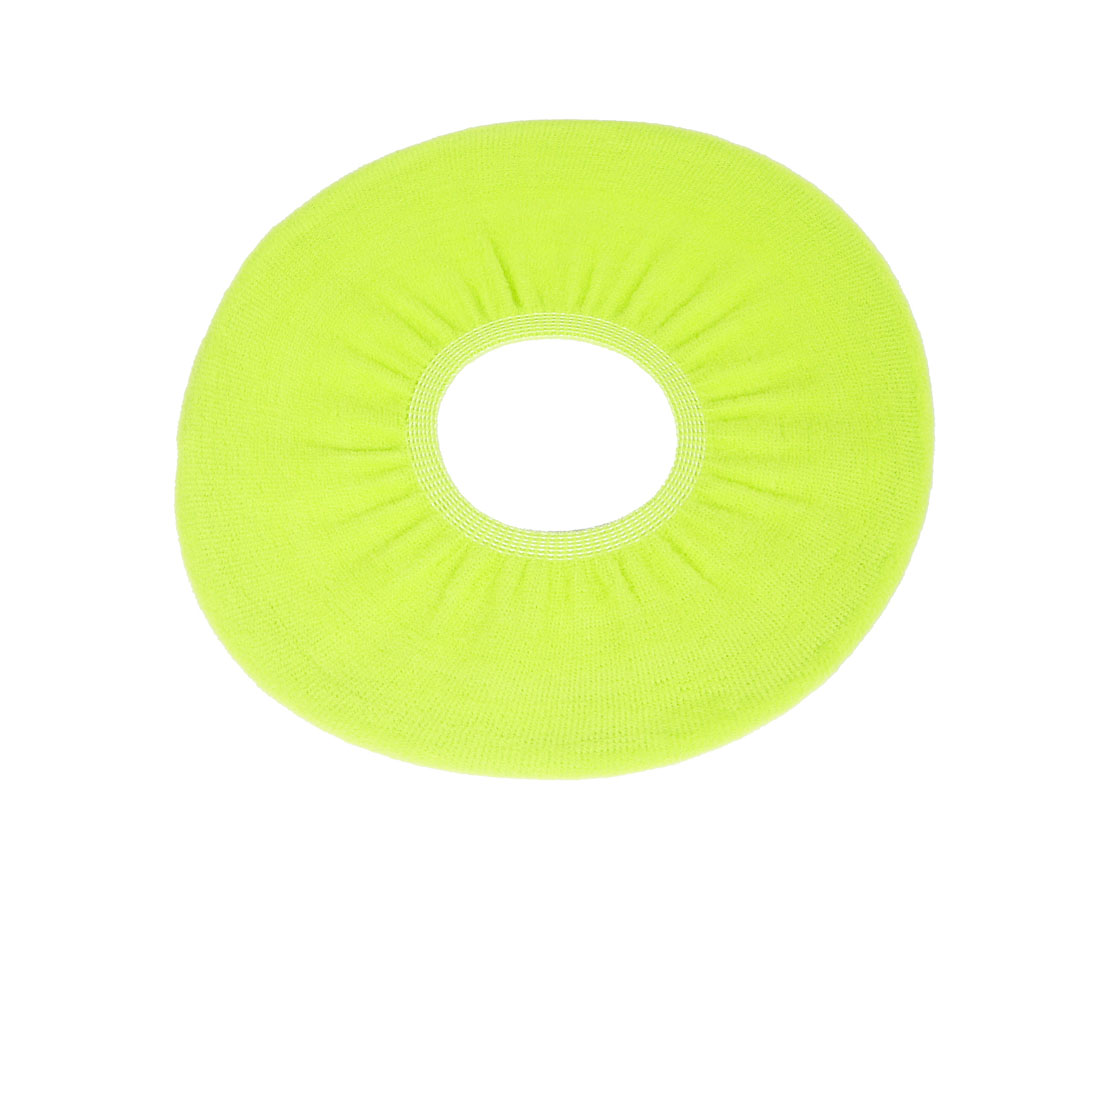 Toilet Closestool Yellow Green Fleece Seat Cover Clean Pad 31cm Dia